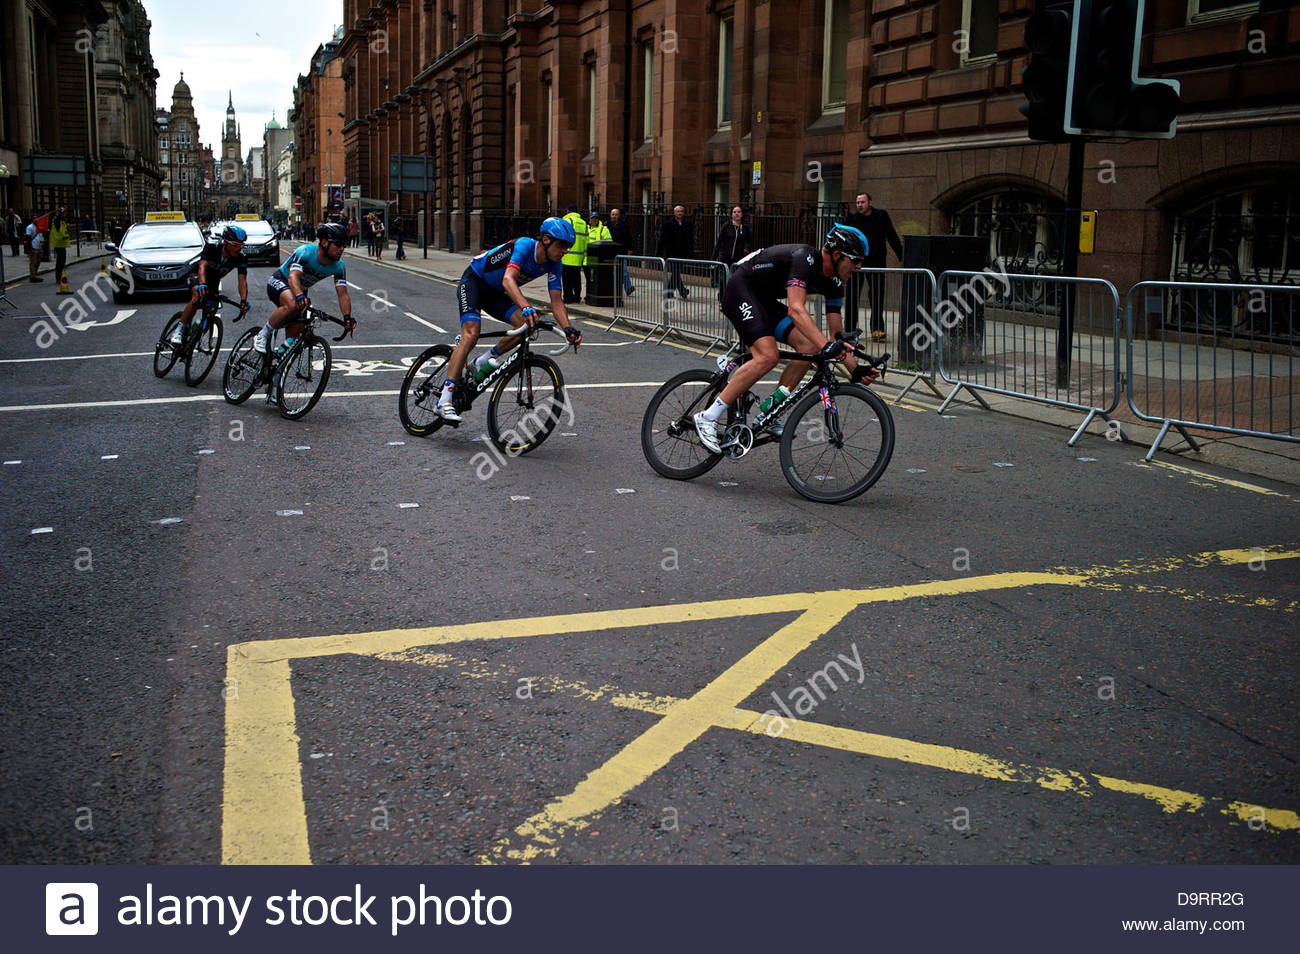 Ian Stannard of Team Sky leads the breakaway during the Mens British  Cycling National Road Race c7a9c5af3